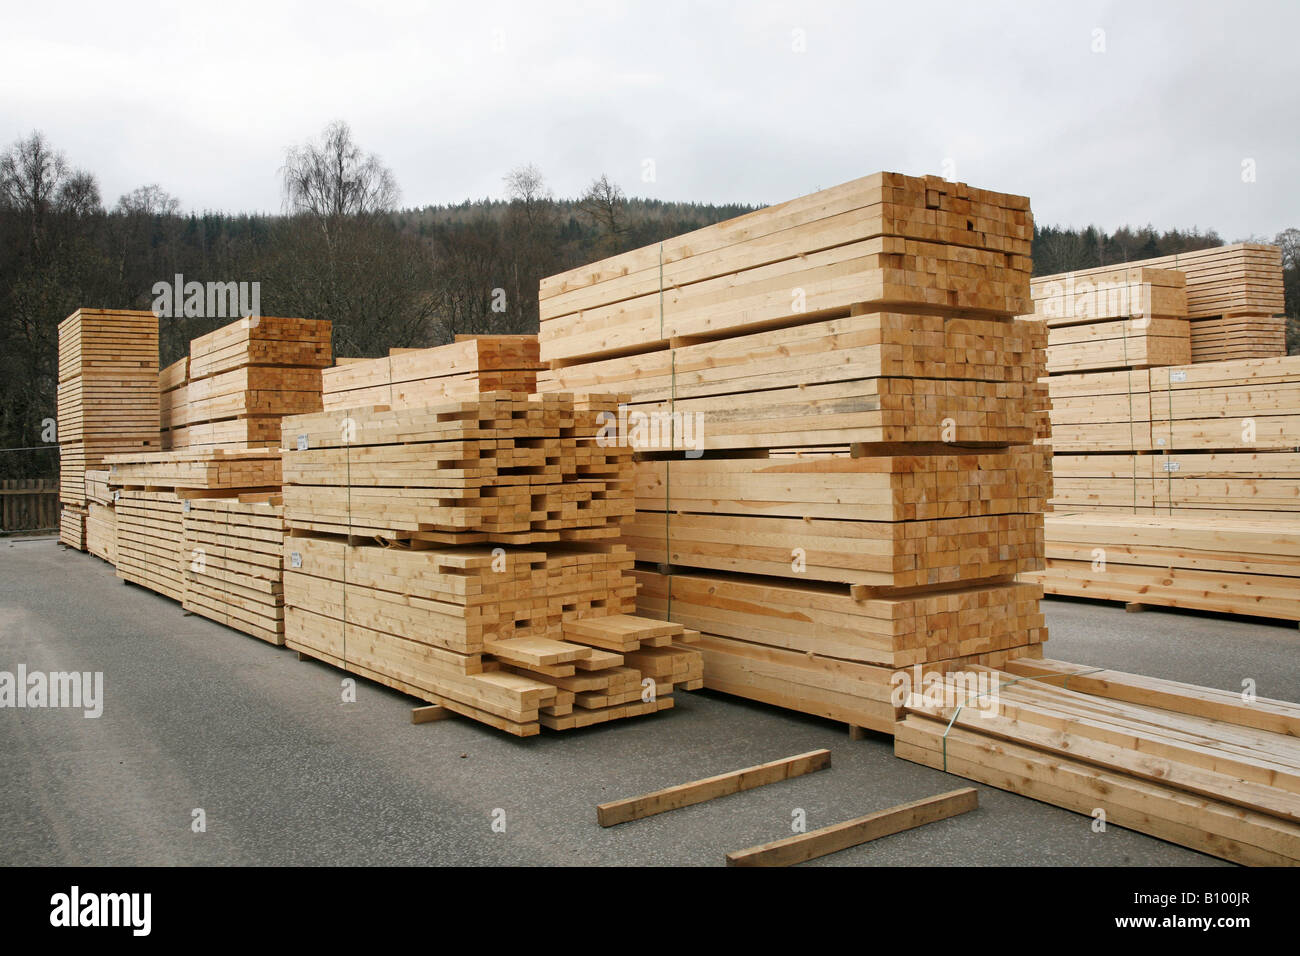 Stacked sawn timber planks